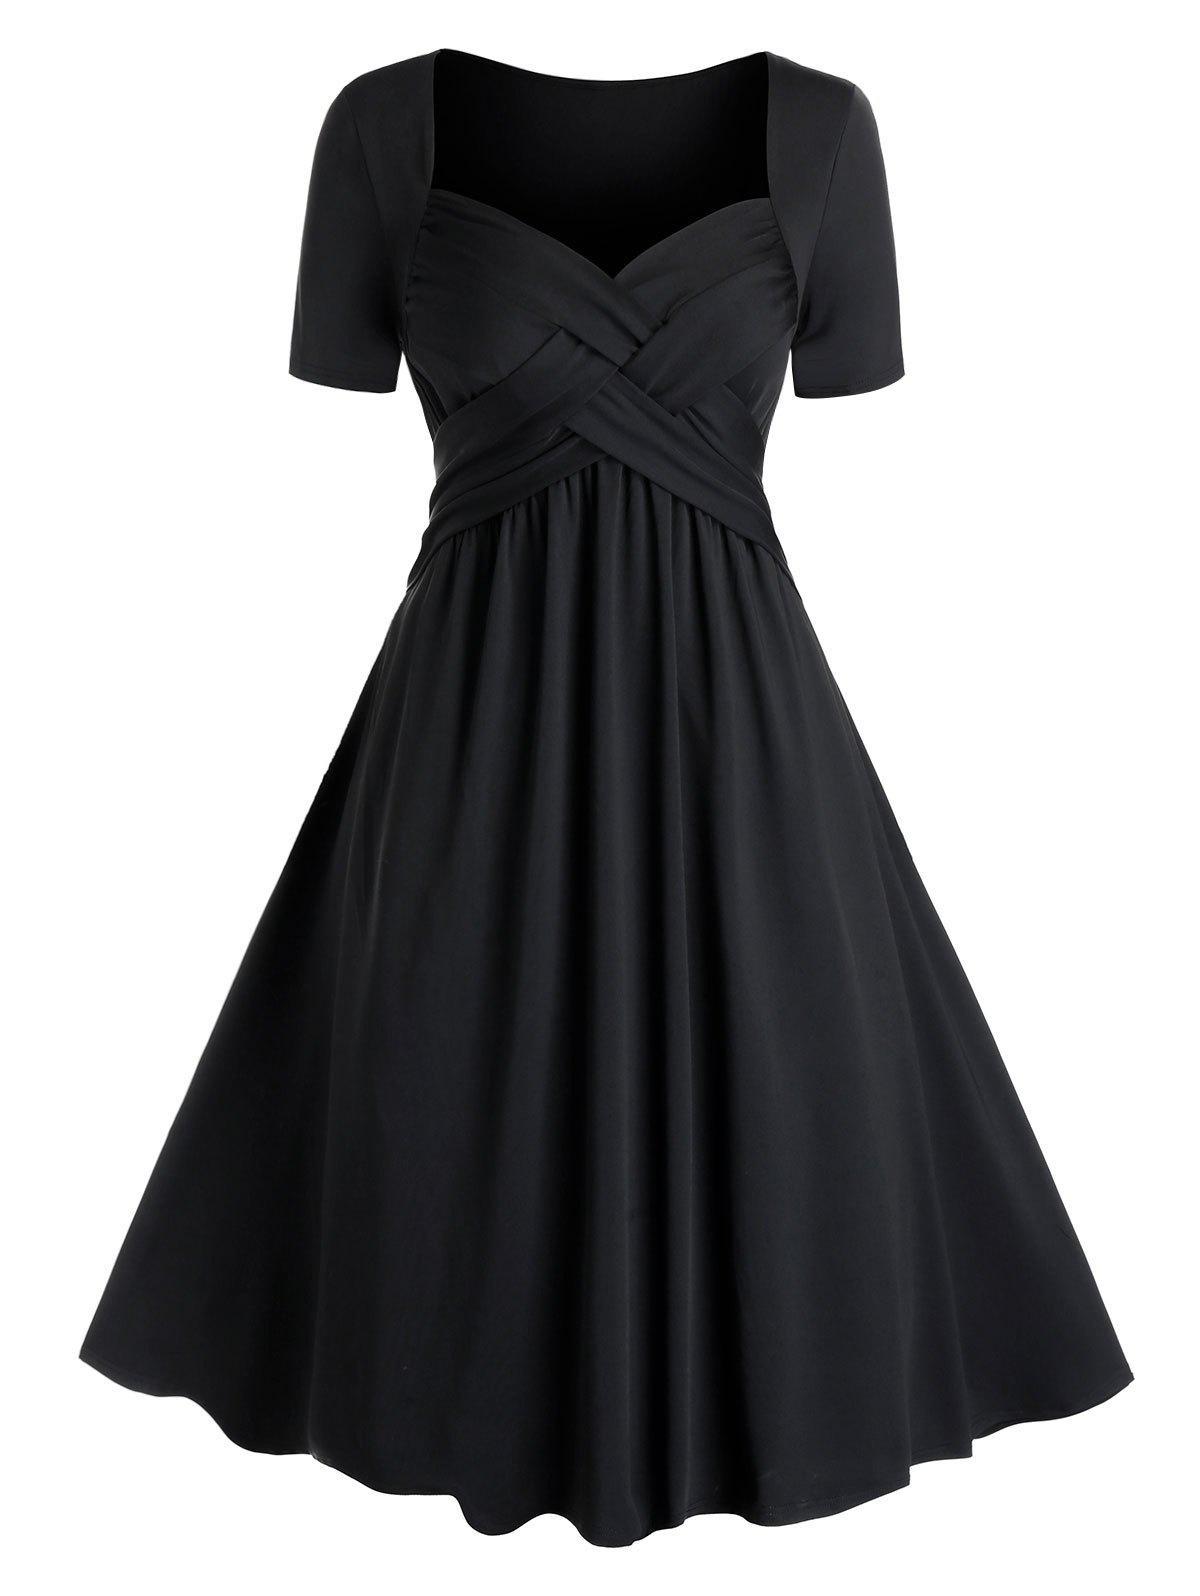 Plus Size Crossover Fit and Flare Dress - BLACK 5X